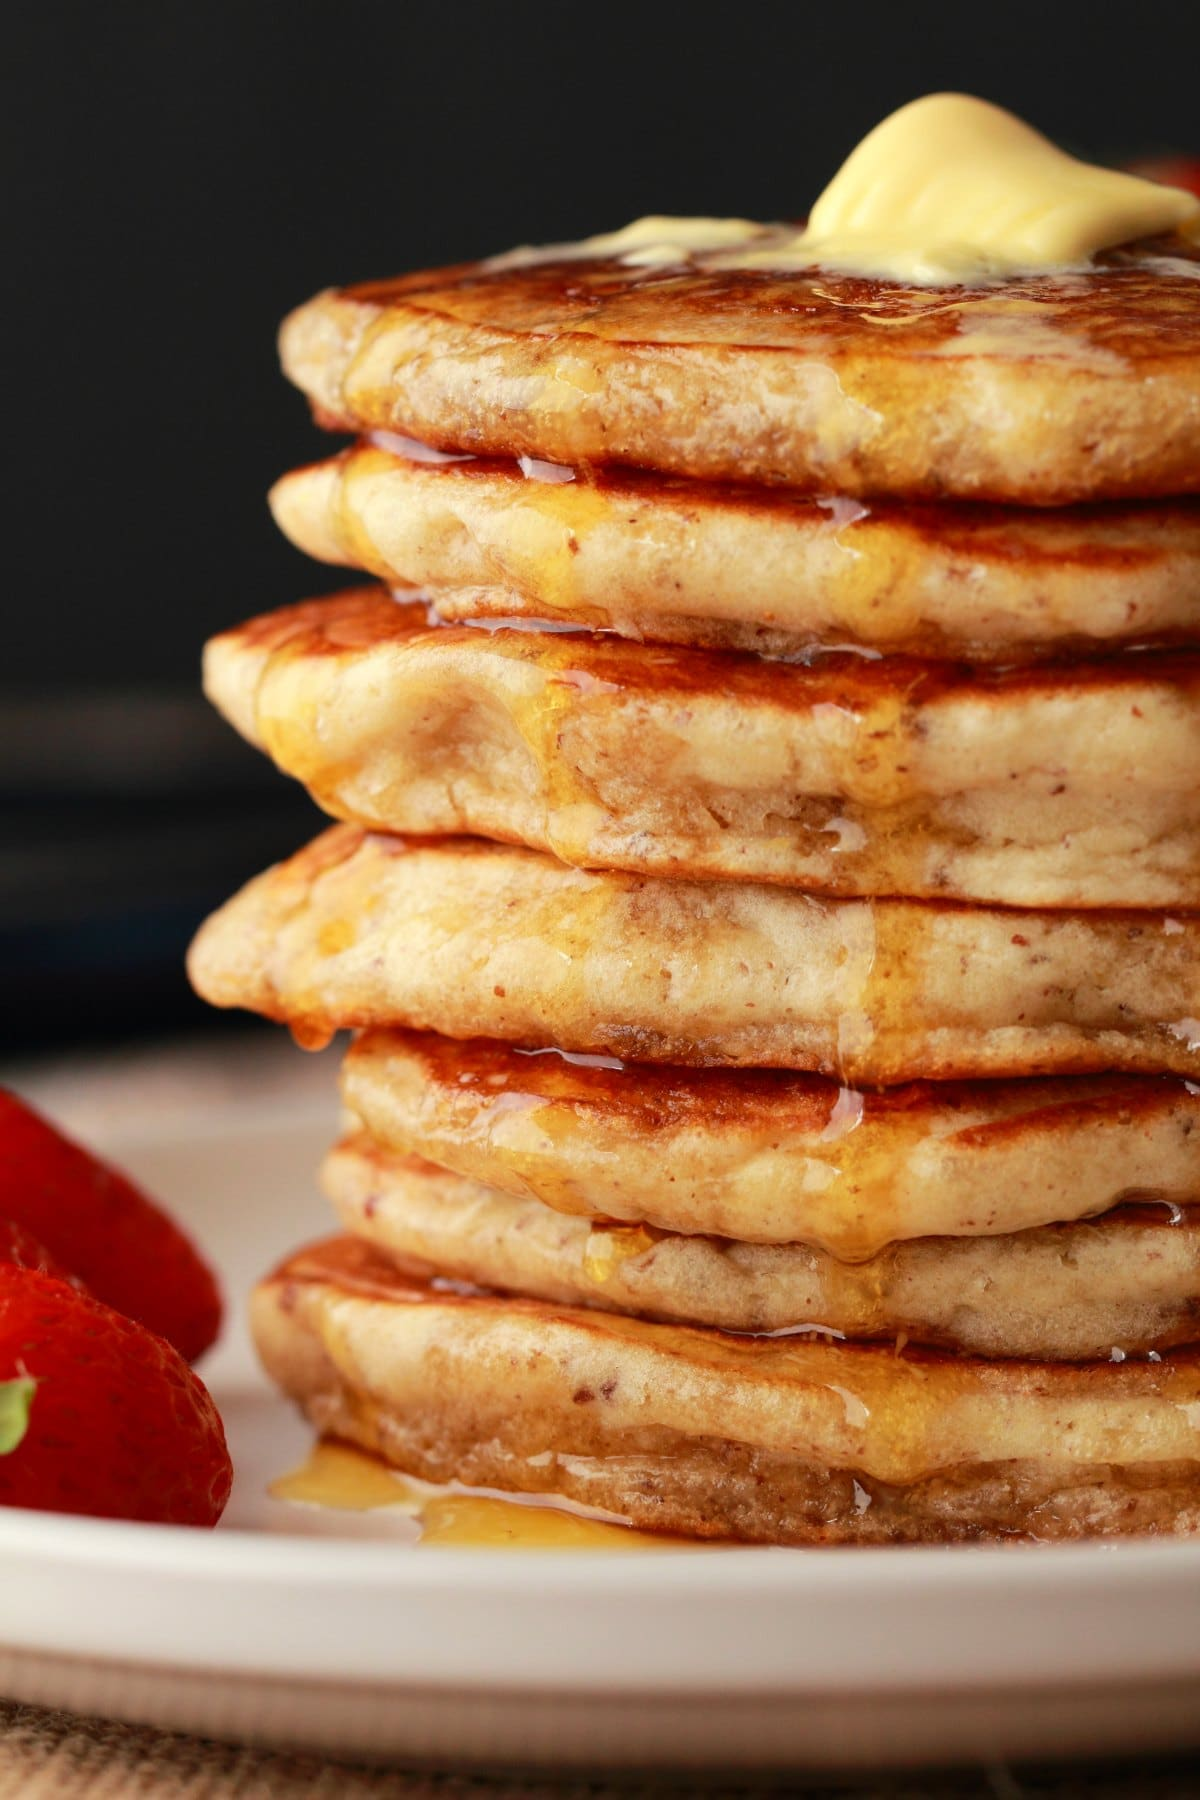 A stack of vegan pancakes with melted butter on top and syrup drizzling down the sides.